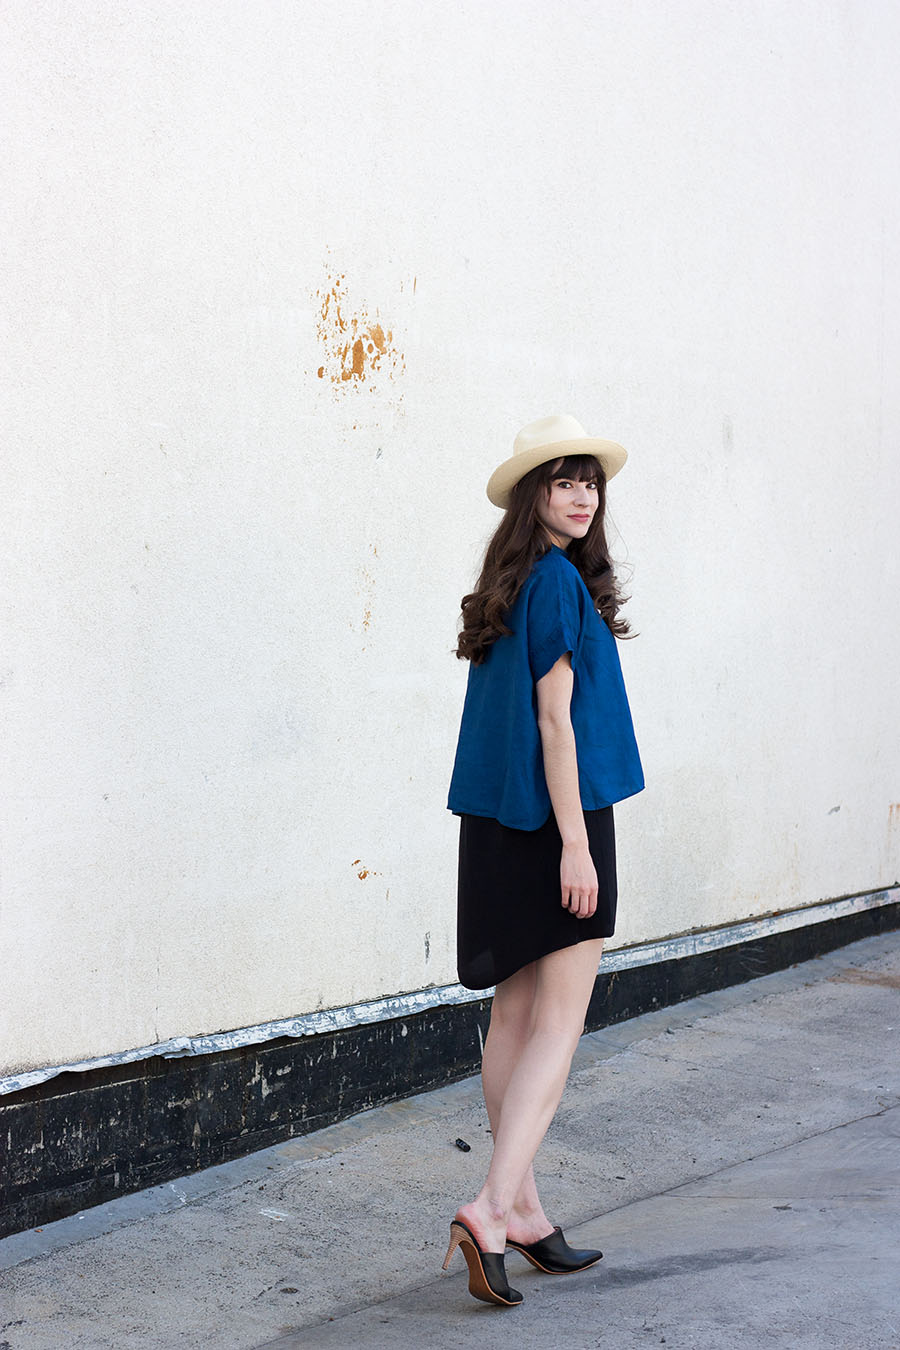 Everlane, Linen Square Shirt, Panama Hat, Black Silk Dress, Summer Style